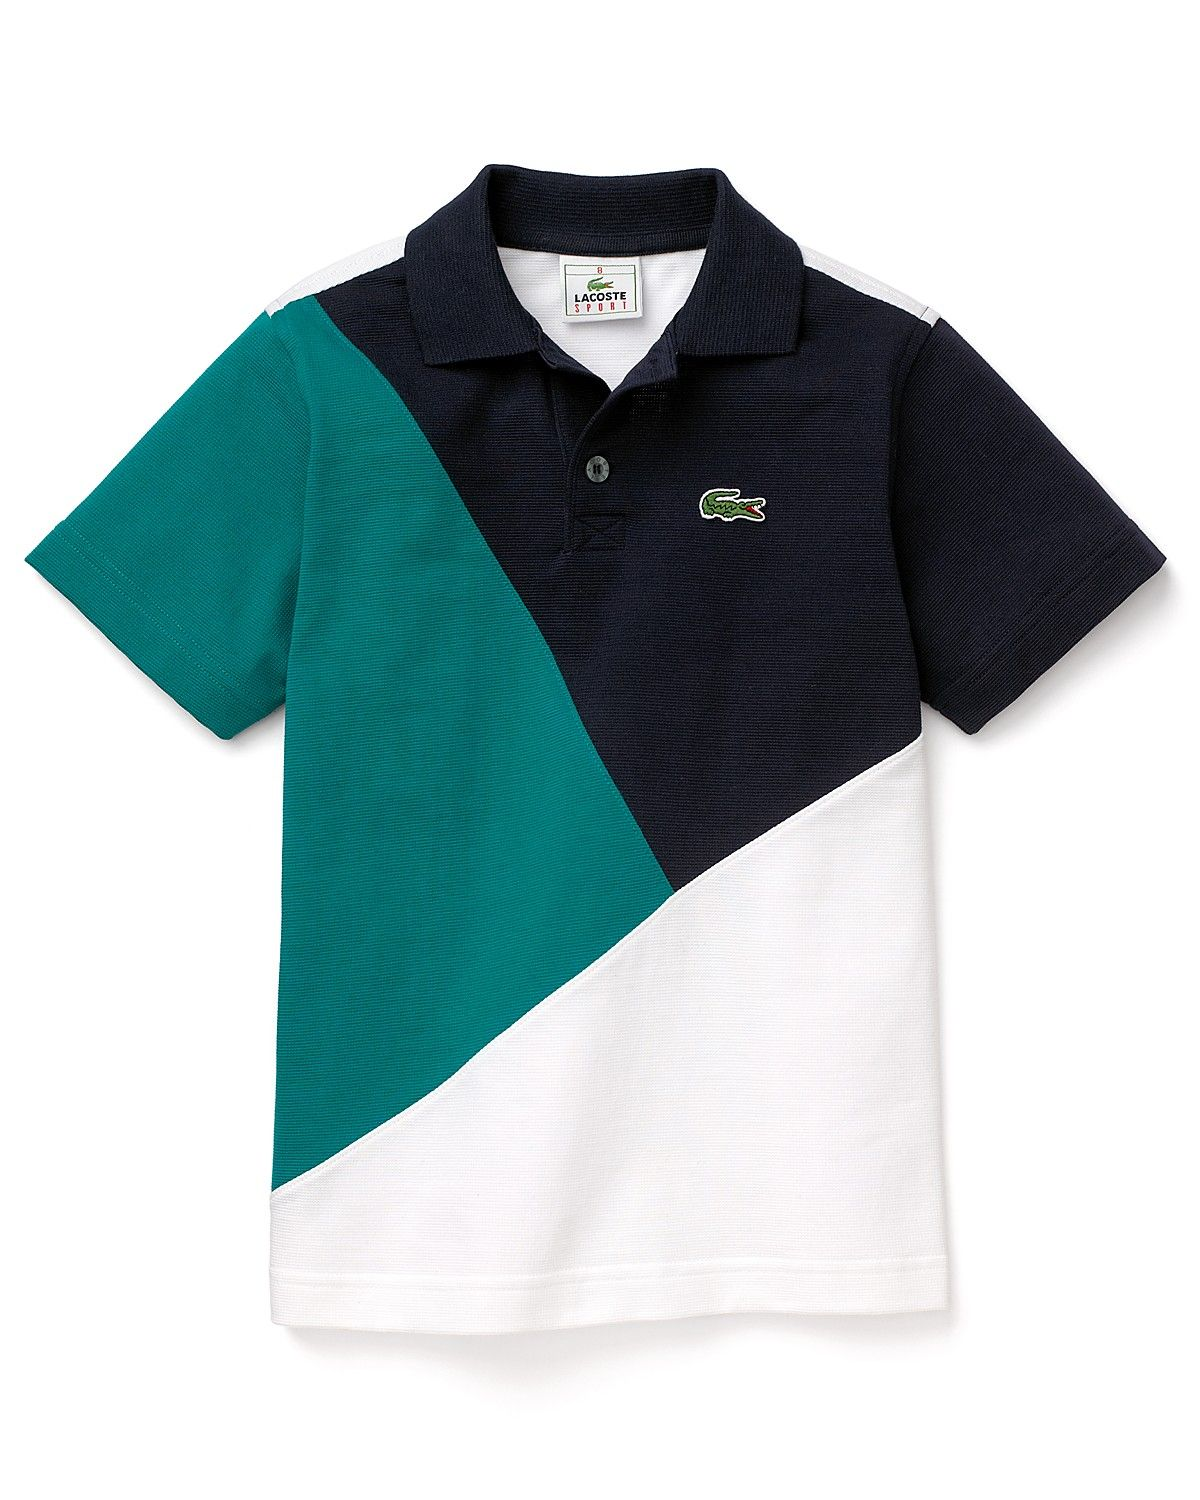 4313ad163 Lacoste Boys' Diagonal Color Block Polo - Sizes 4-16 | Bloomingdale's Lacoste  Polo